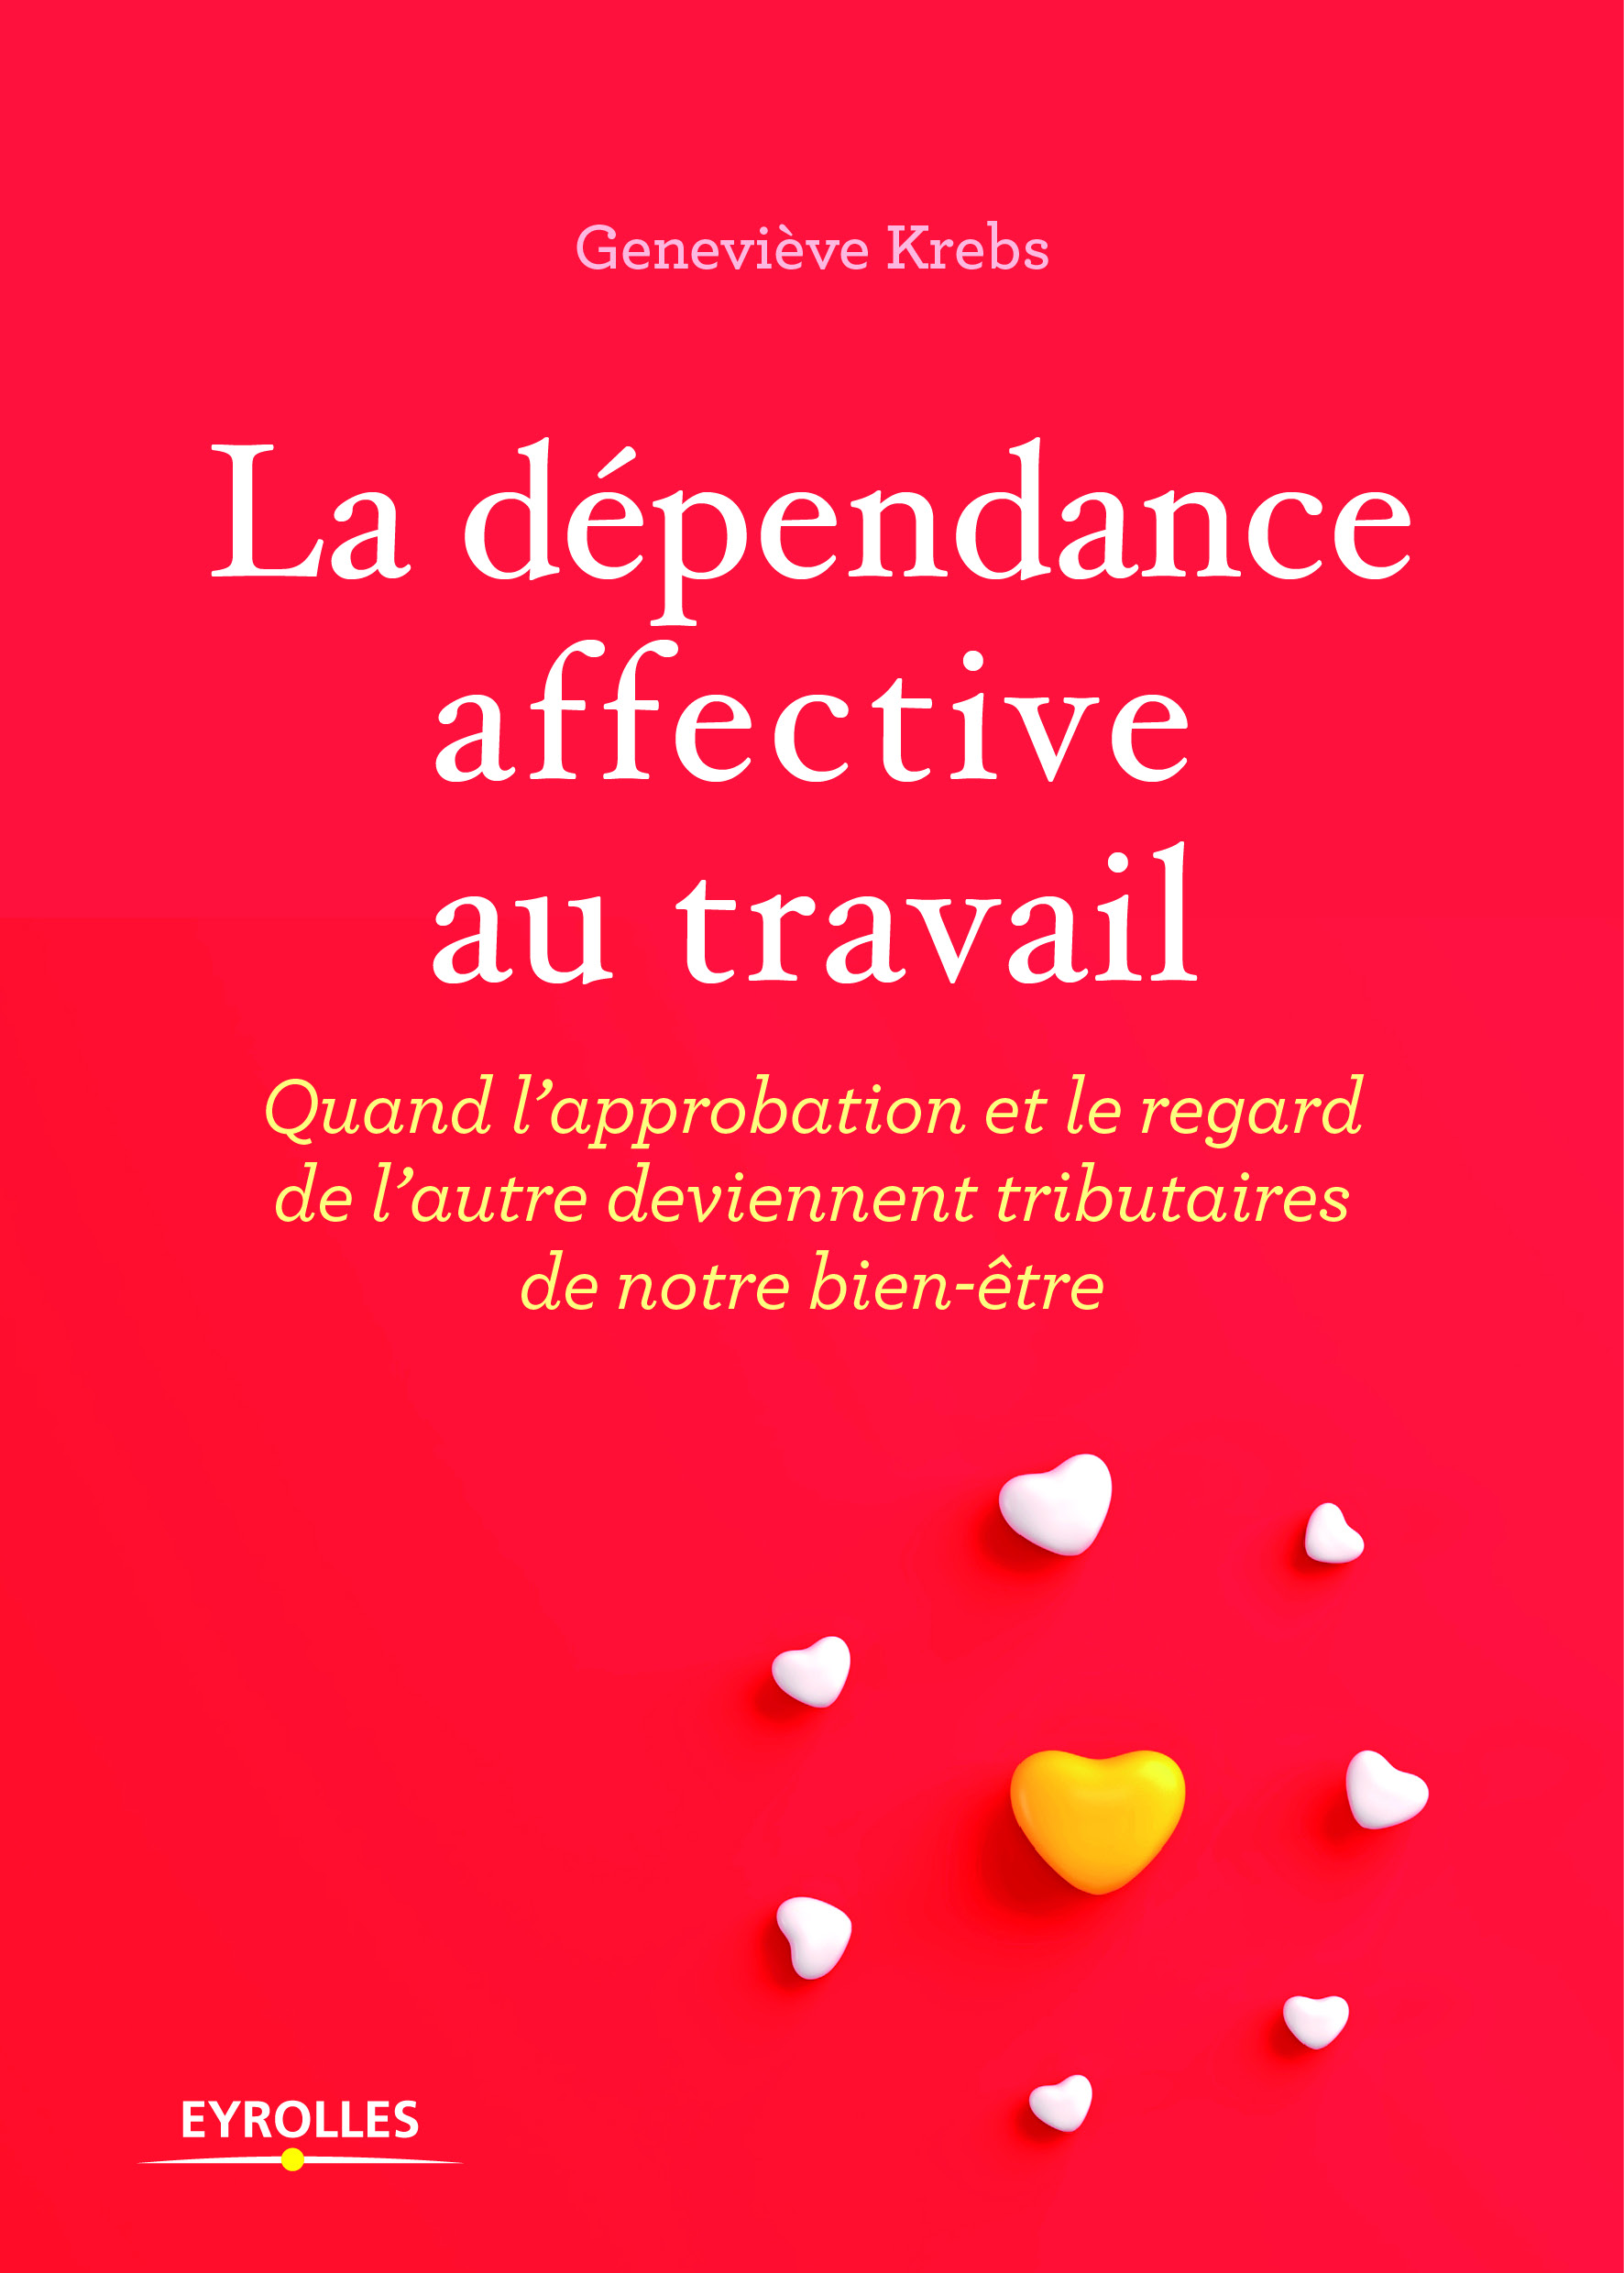 dependance-affective-au-travail-genevieve-krebs-eyrolles